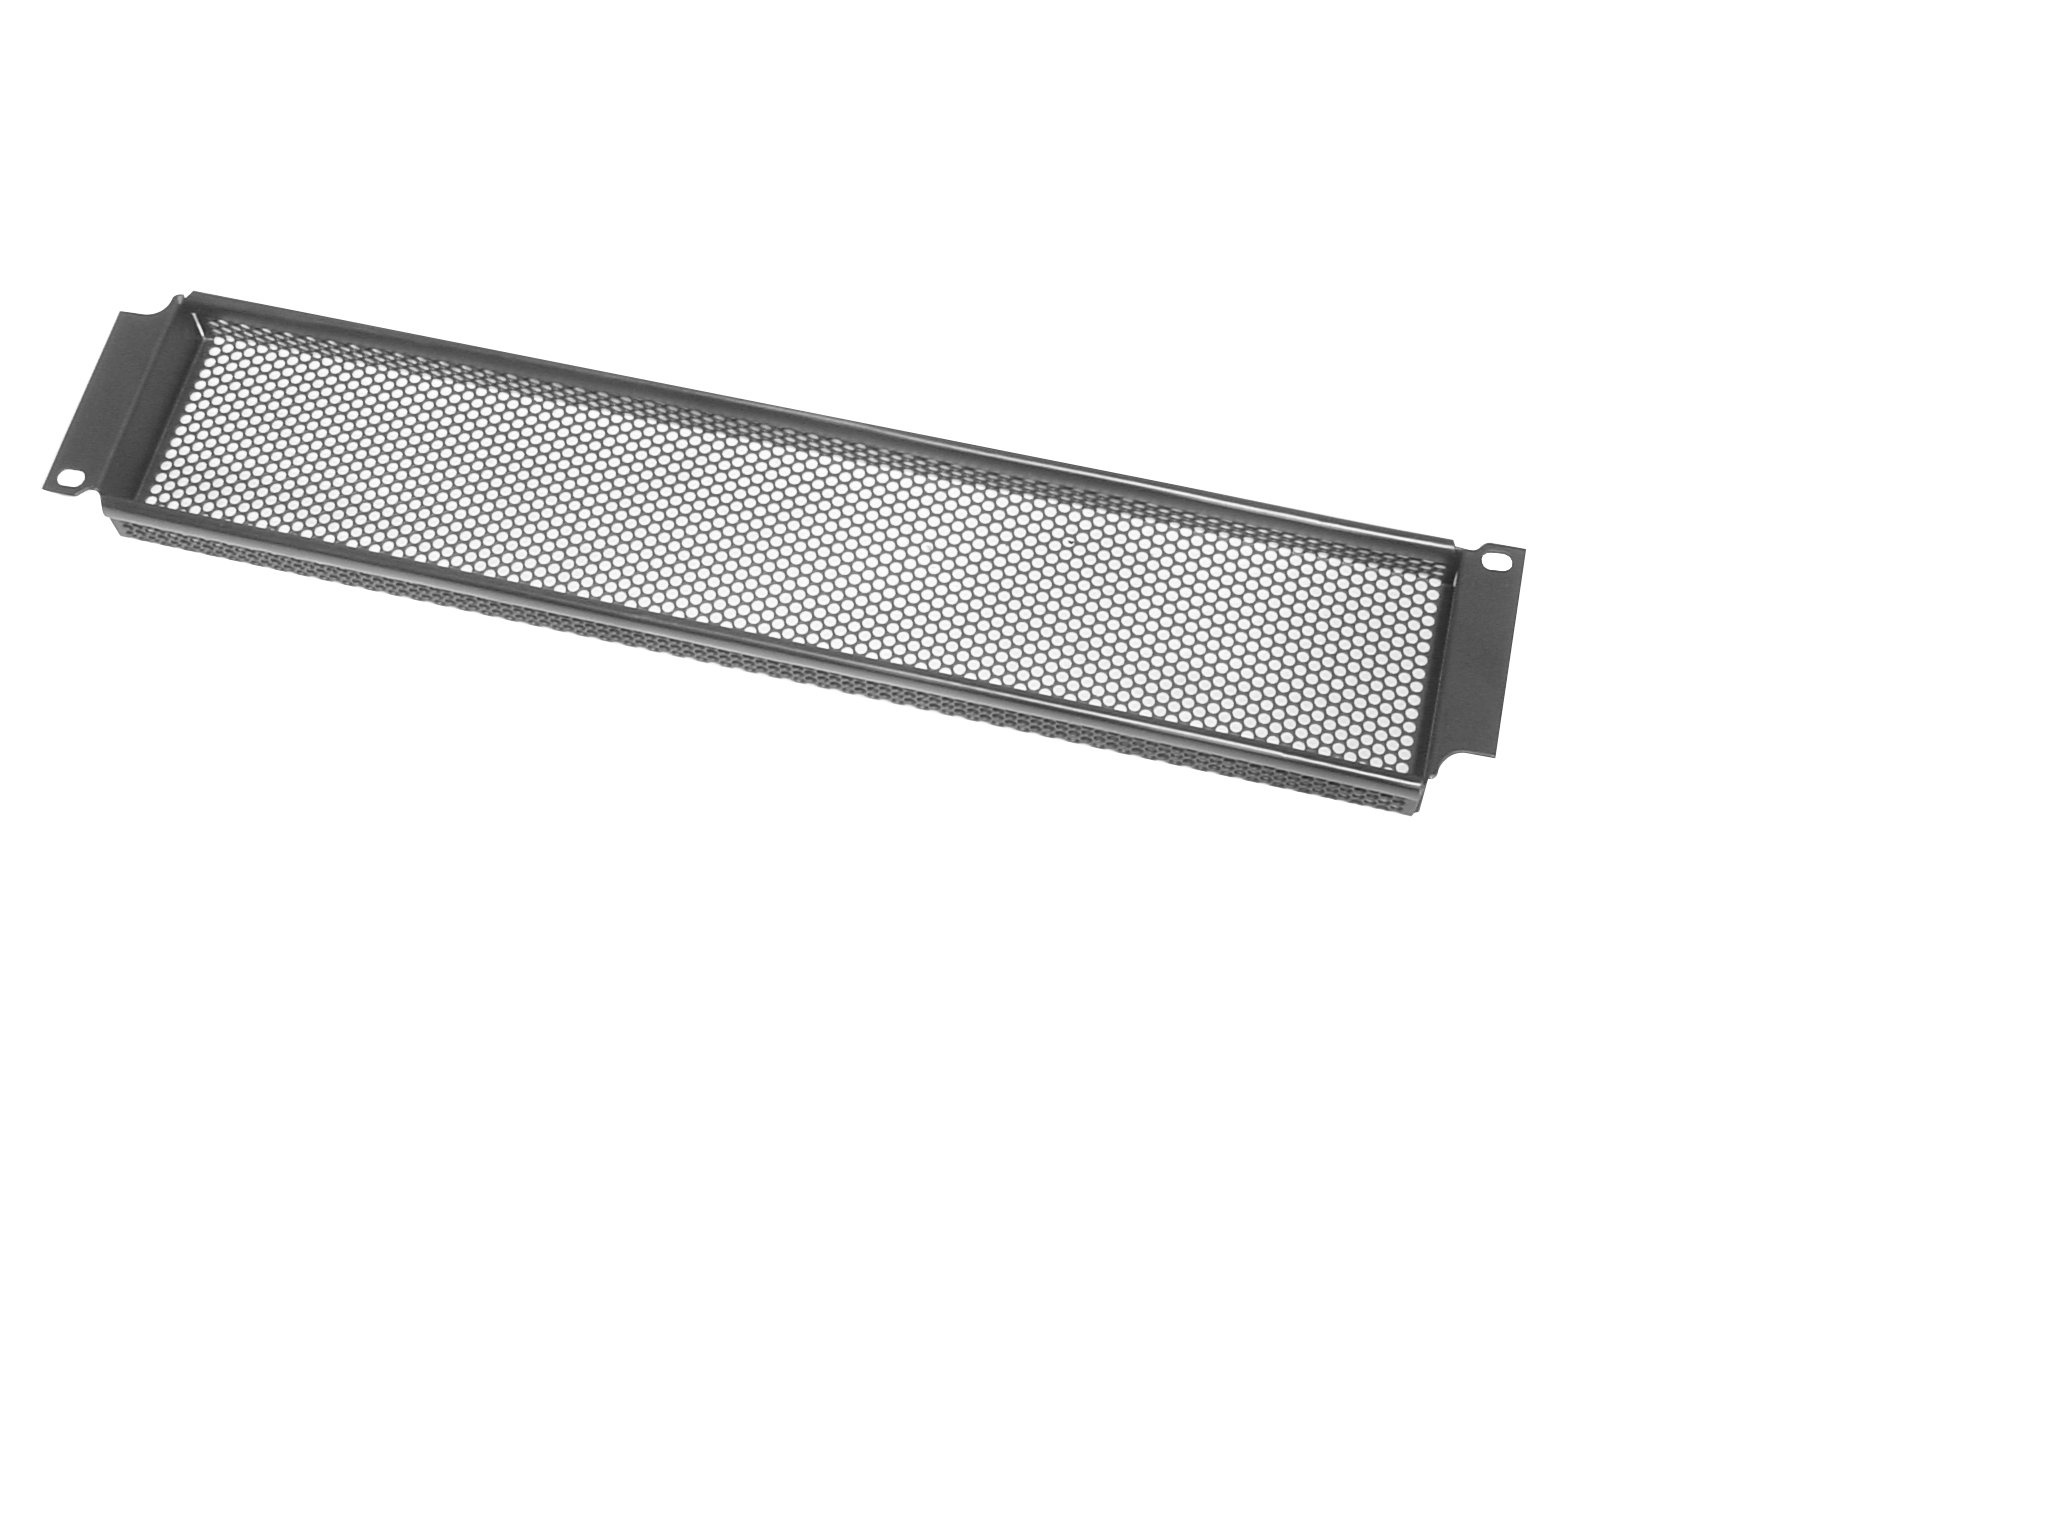 Odyssey ARSCLP02 2 Space Large Perforated Security Cover Rack Accessory